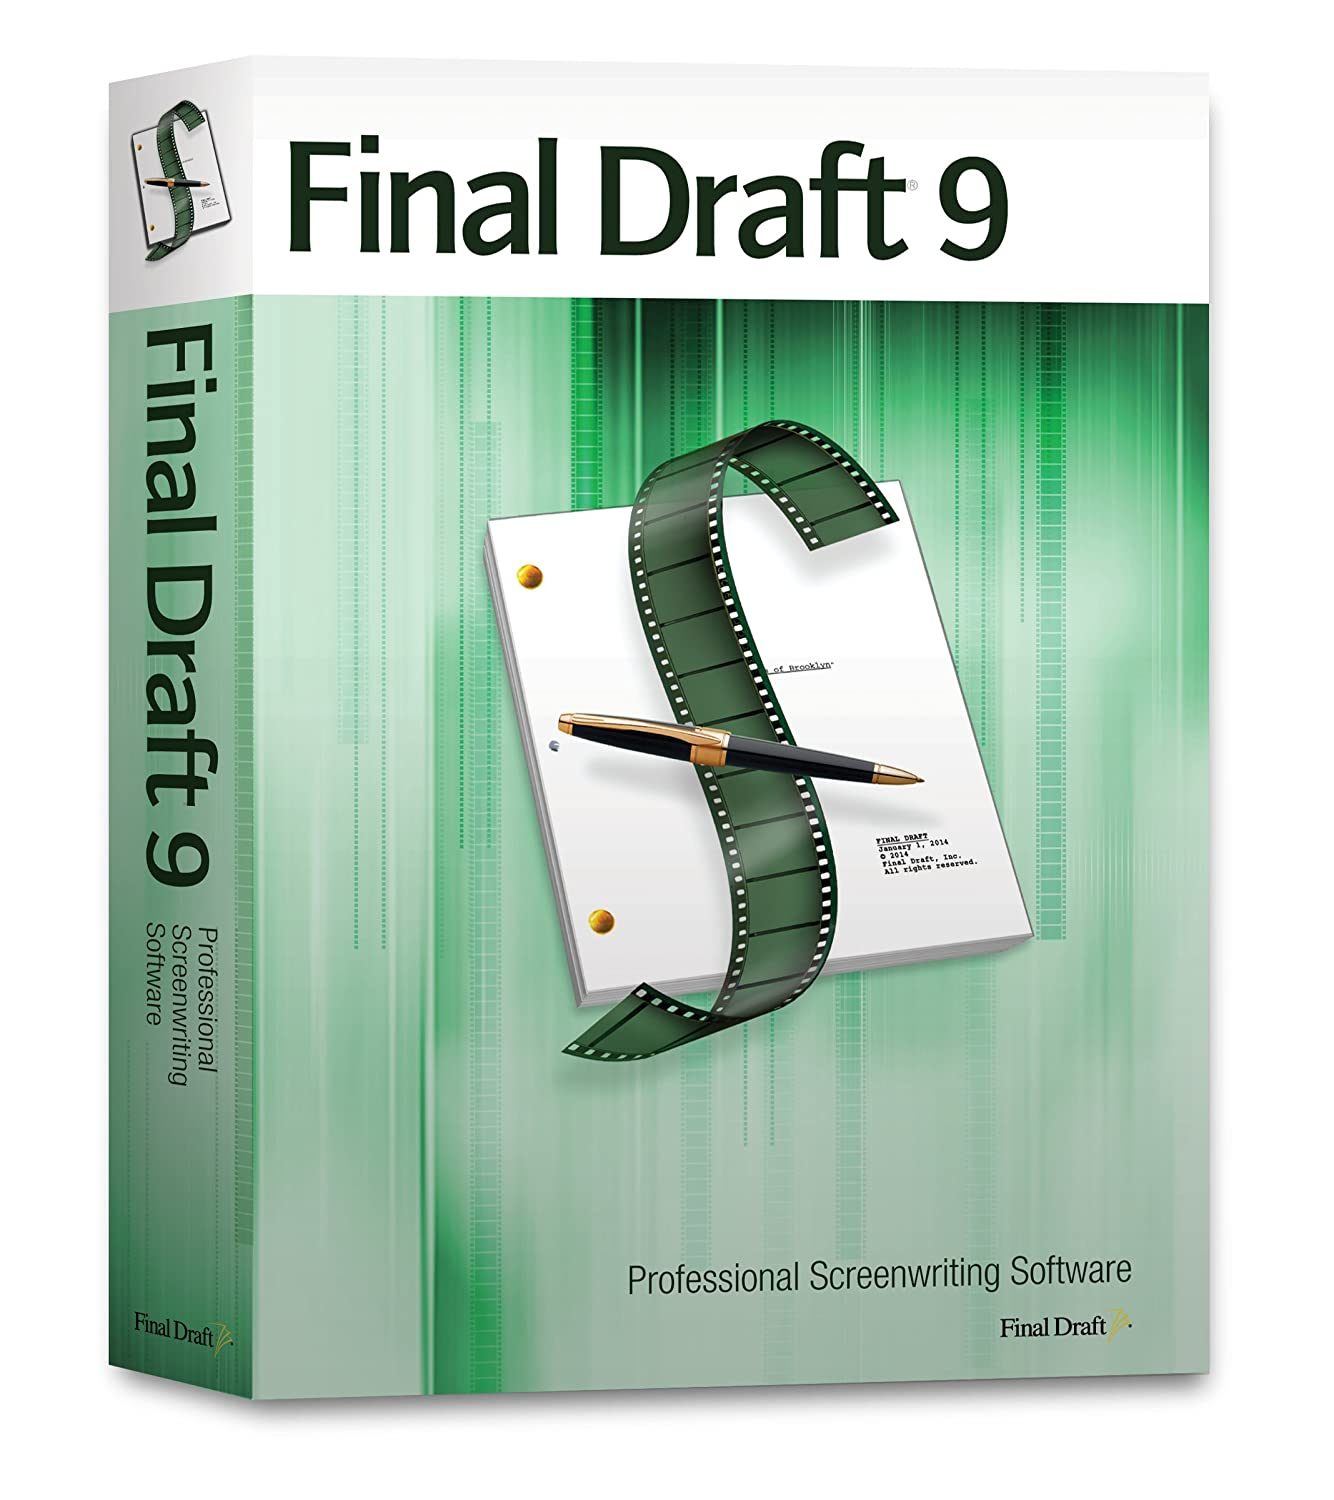 Amazoncom Final Draft Software - 20 funniest reviews ever written amazon 6 cracked